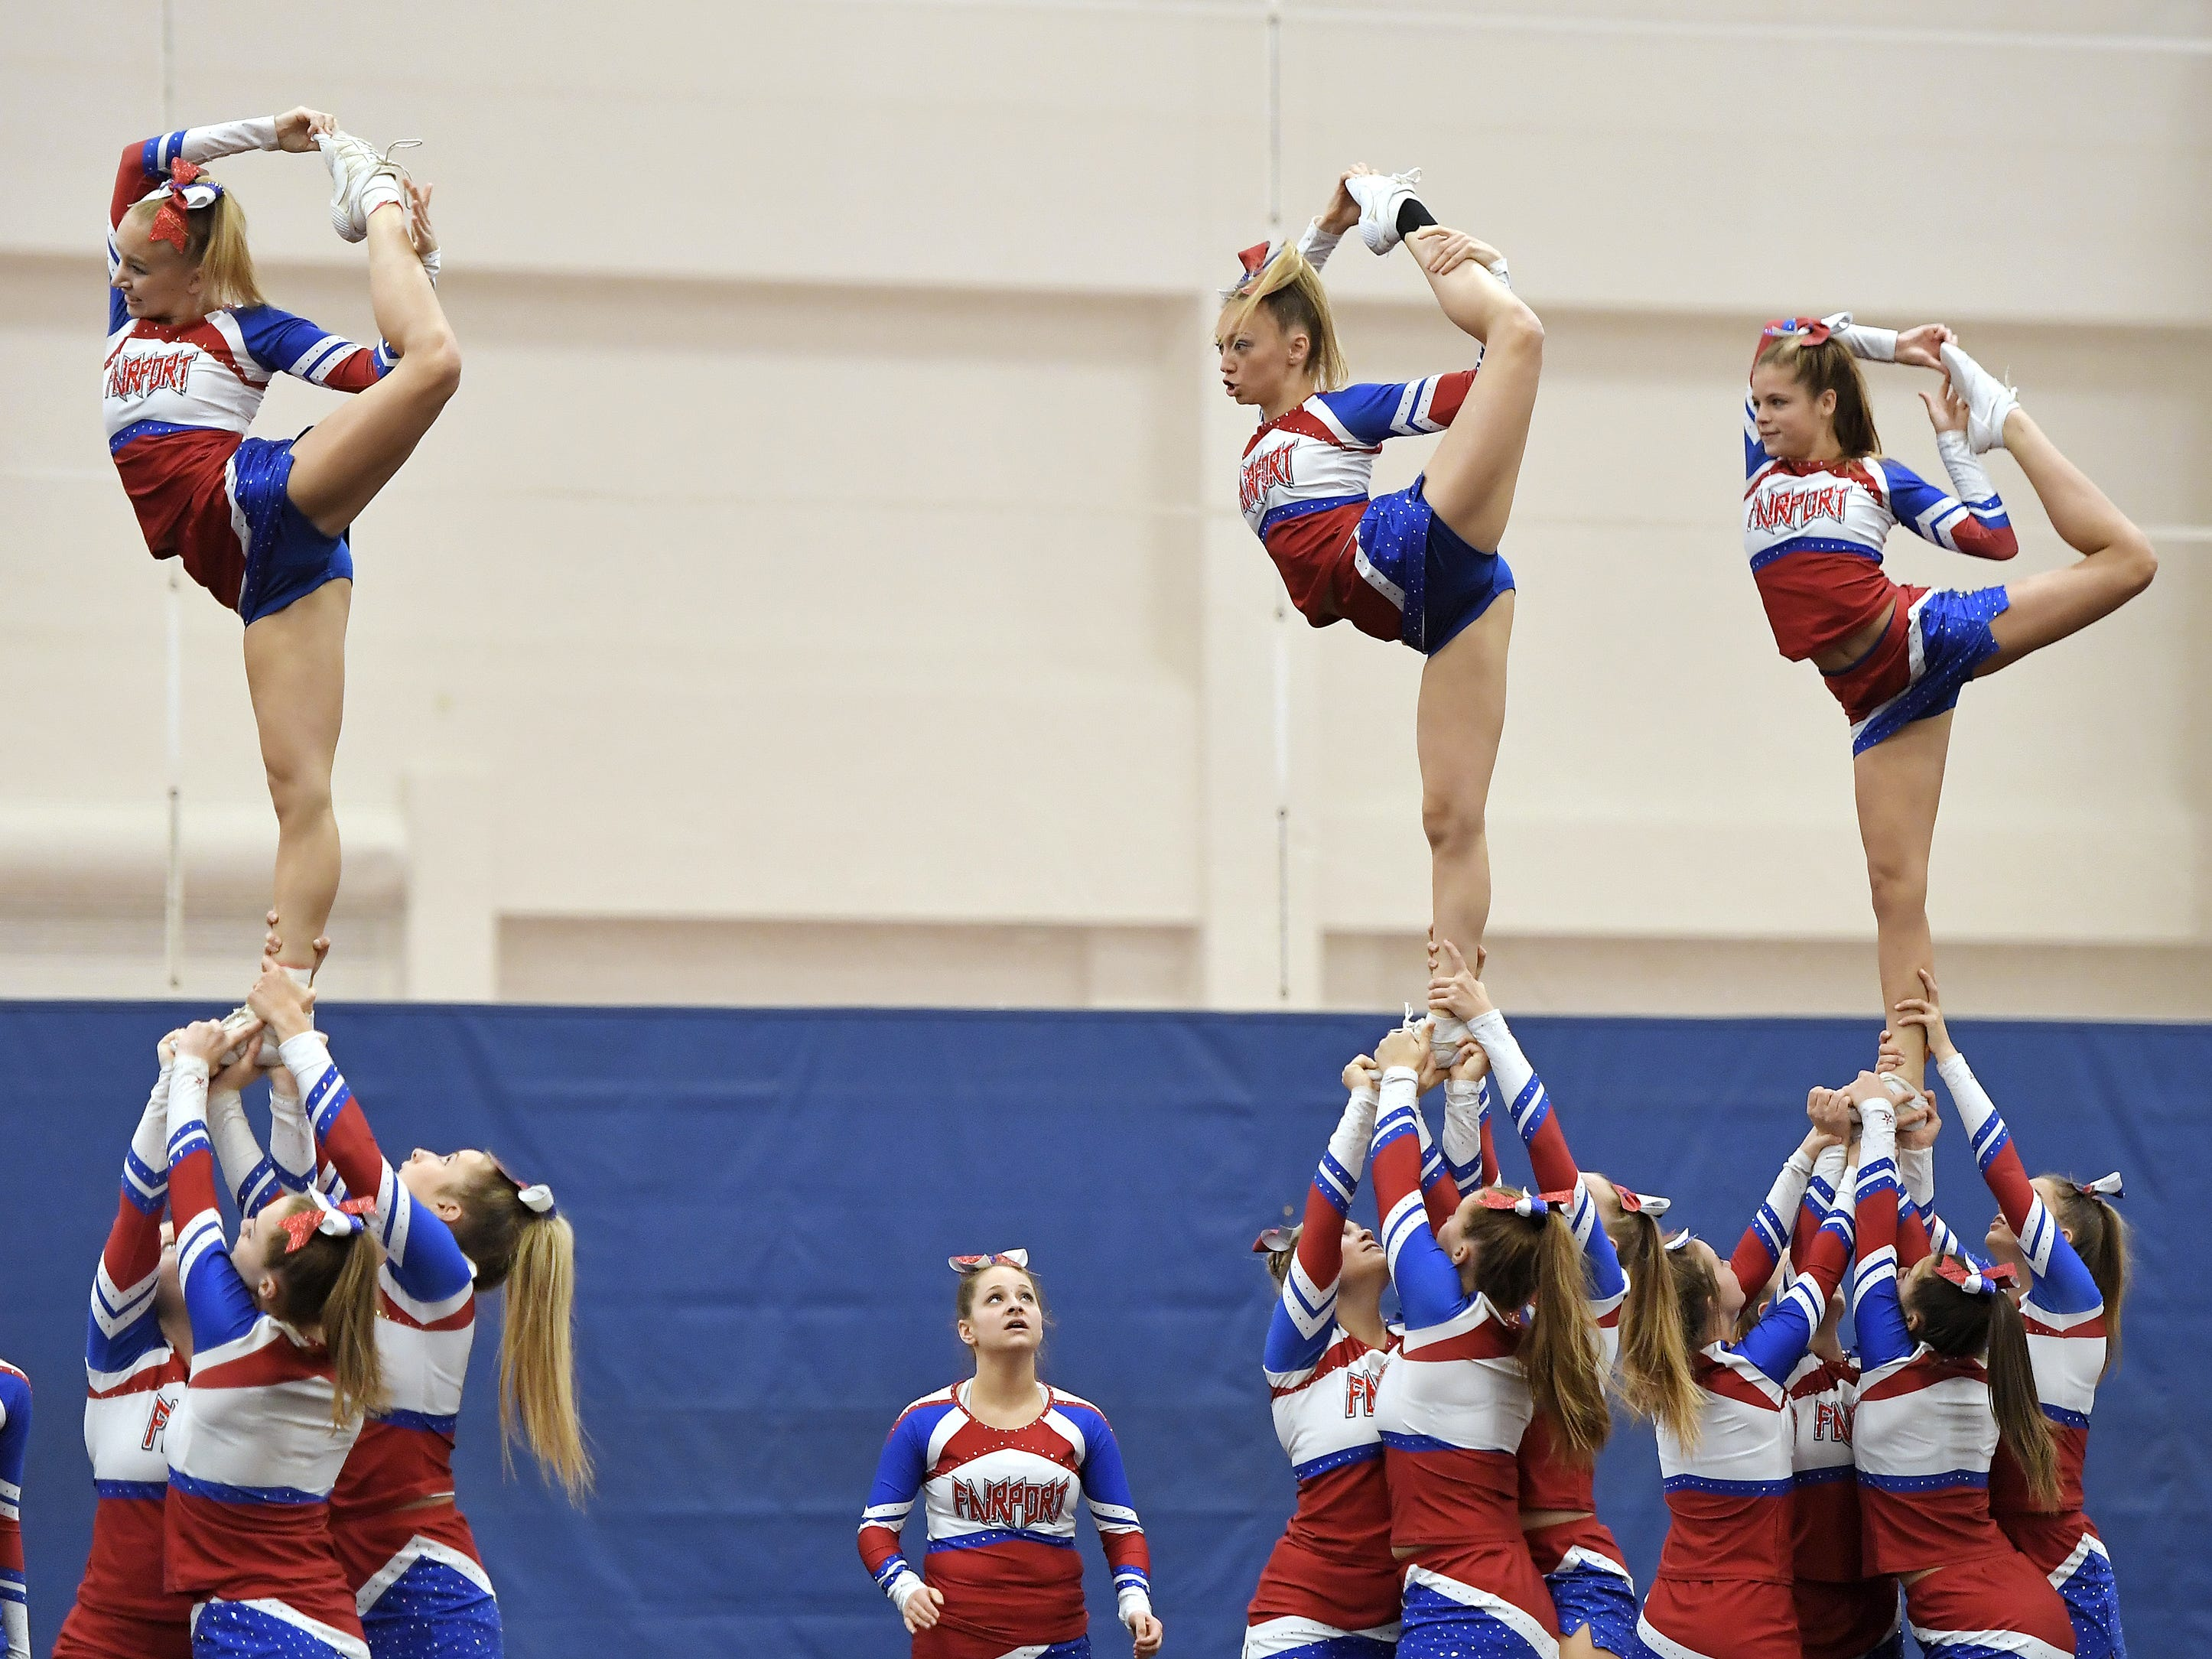 Fairport cheerleaders perform their routine during the Section V Fall Cheerleading Championships at RIT, Saturday, Oct. 27, 2018.